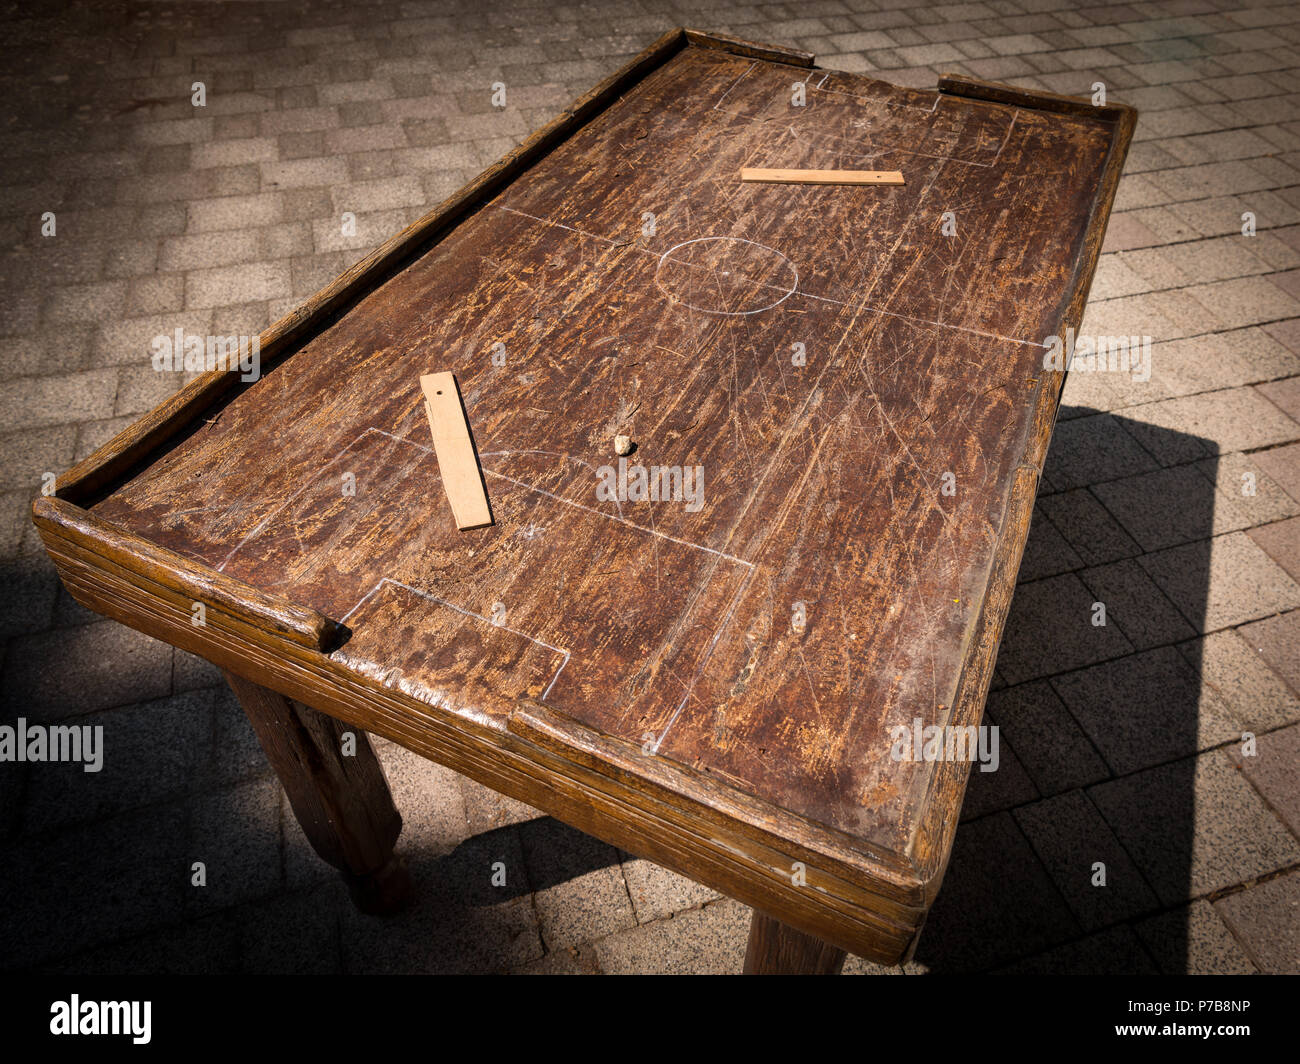 Old wooden table for playing table football, markings of matchfield and rulers - Stock Image